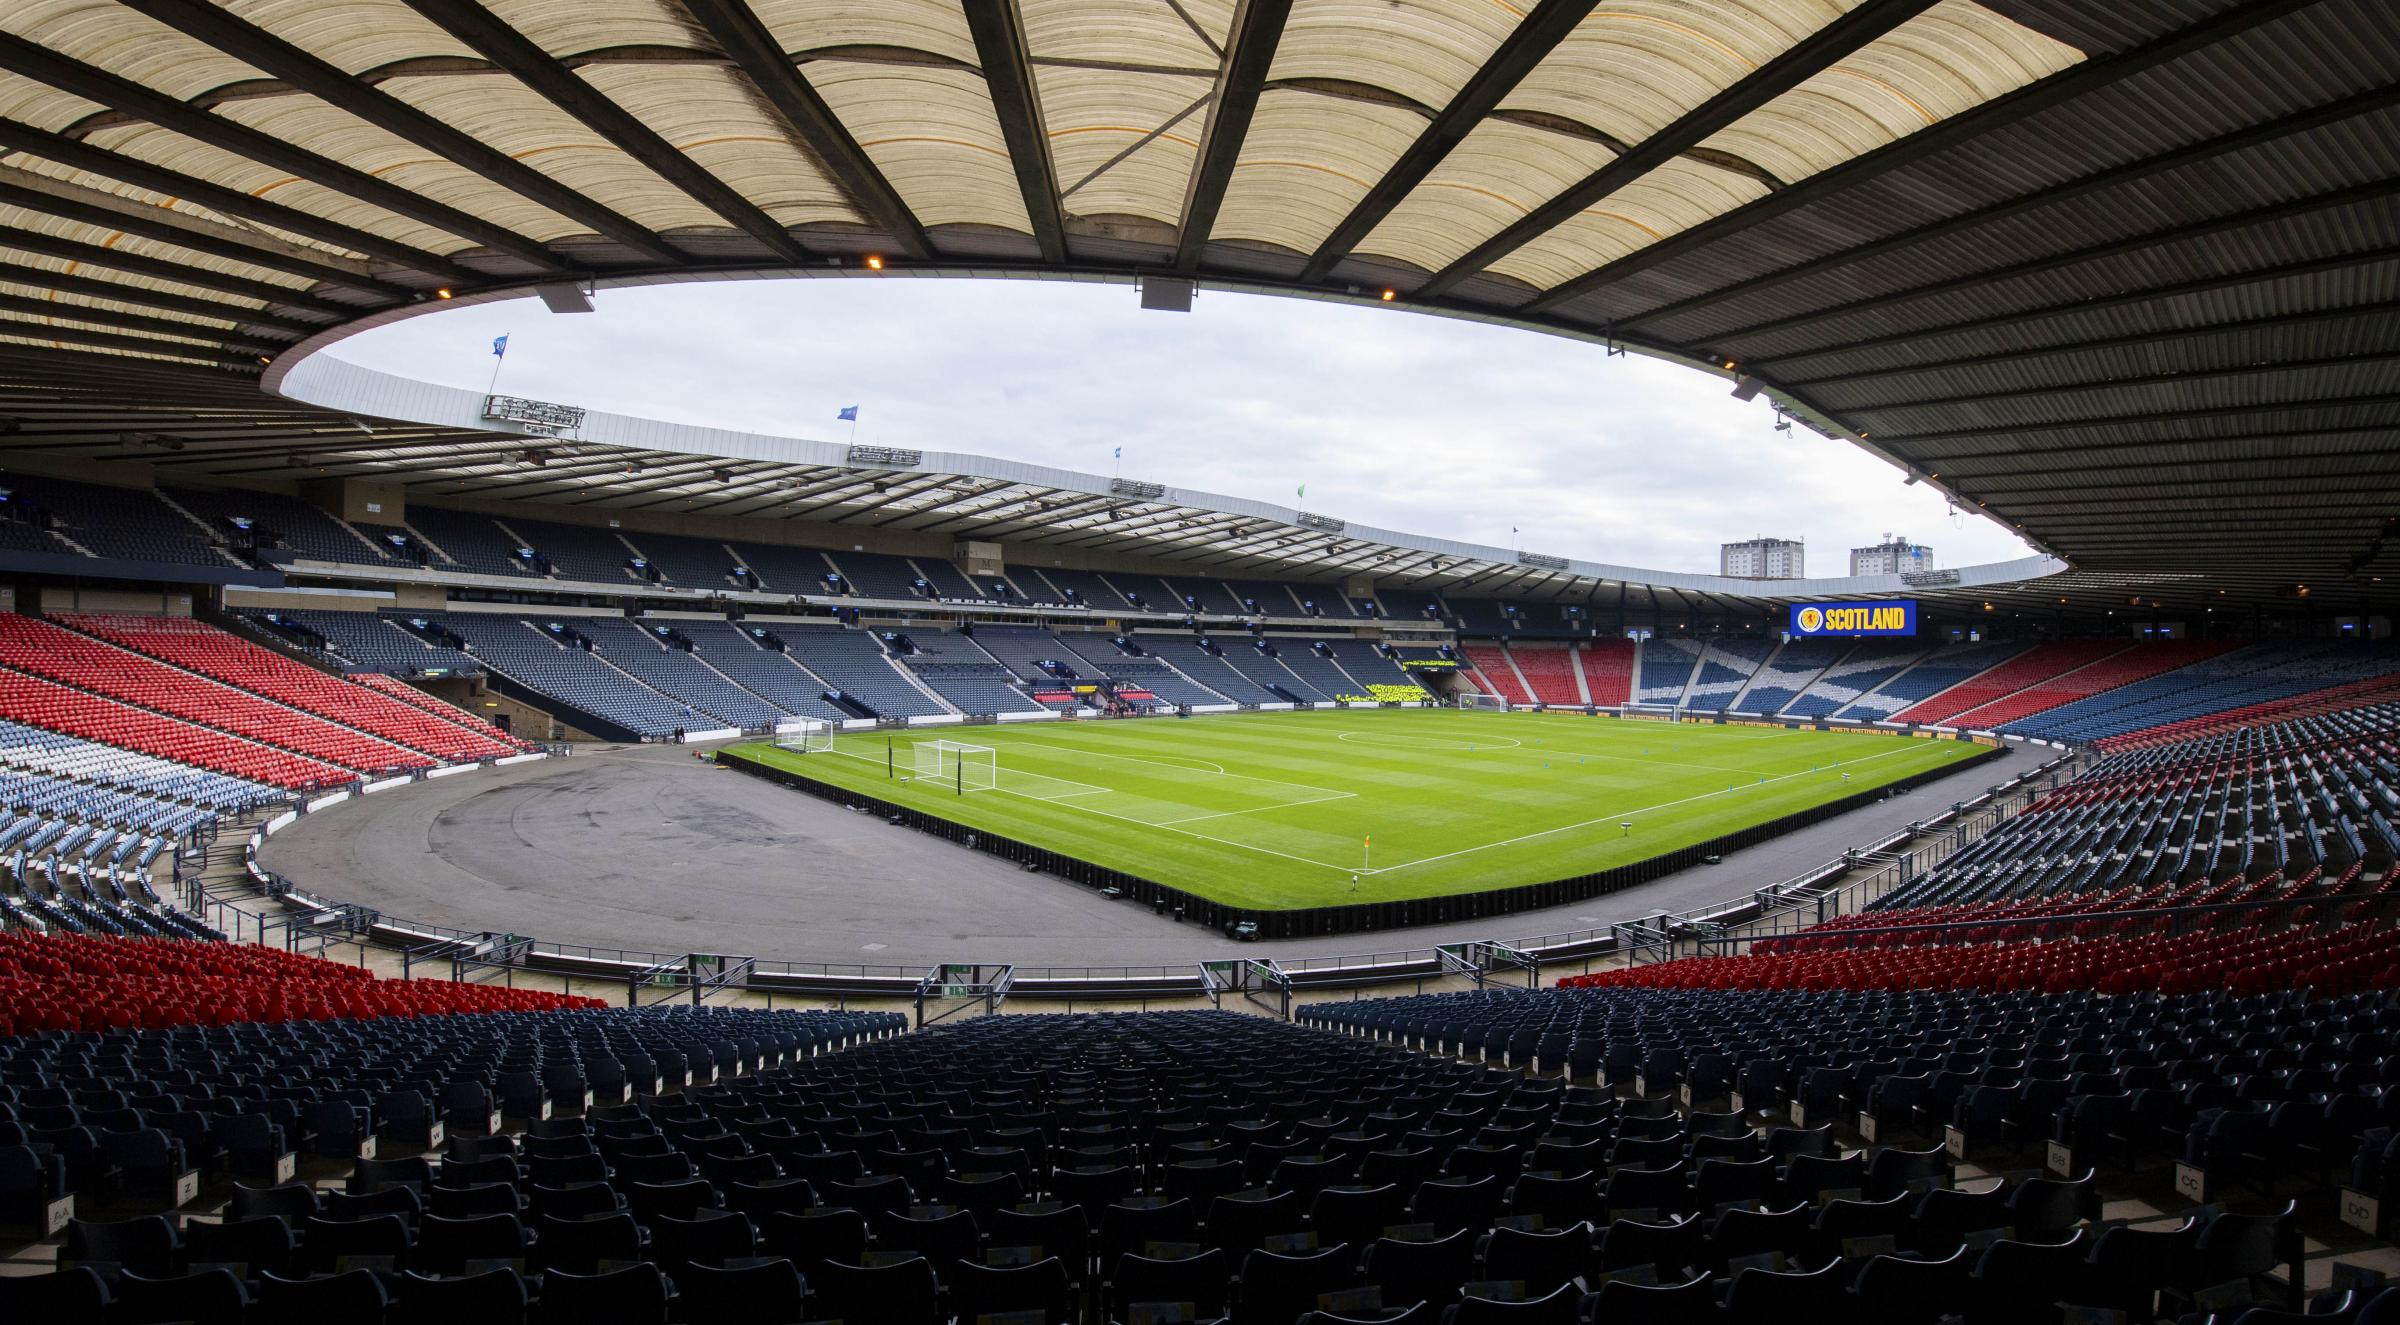 Scotland tickets for Israel clash as cheap as £5 as Steve Clarke issues rallying cry for Tartan Army turnout